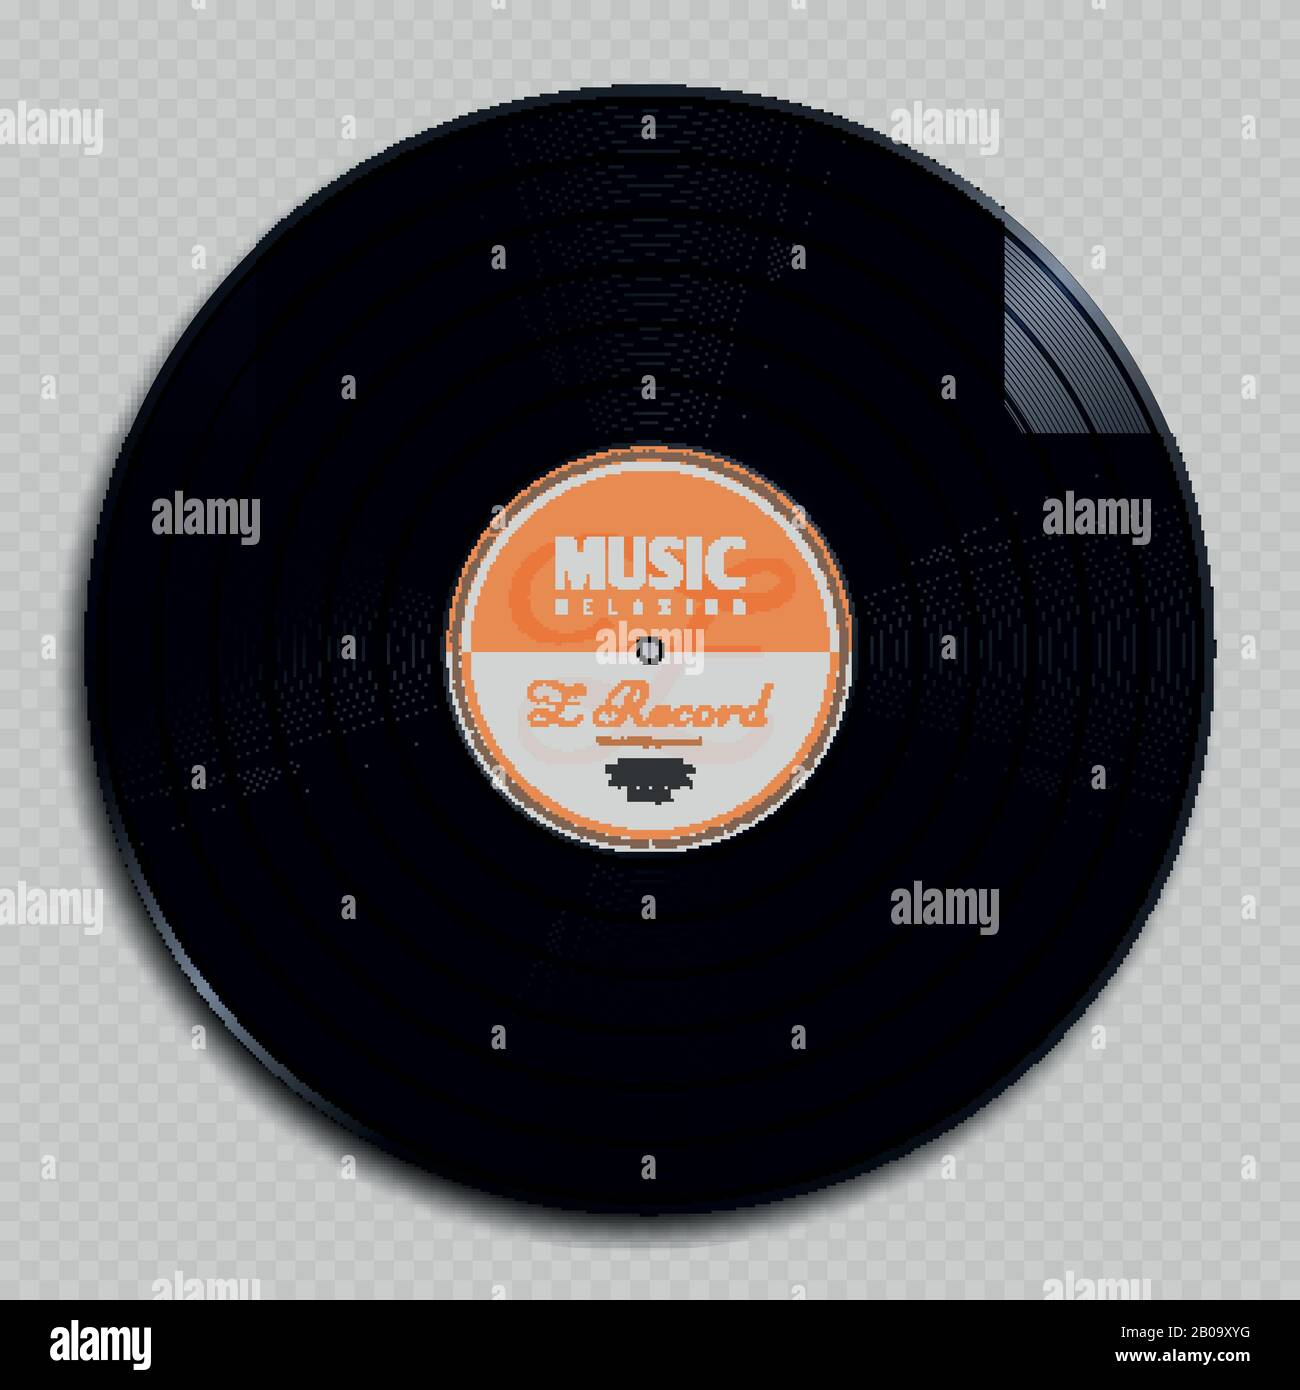 audio analogue record vinyl vintage disc isolated on transparent background vector illustration audio classic plastic disc for gramophone stock vector image art alamy https www alamy com audio analogue record vinyl vintage disc isolated on transparent background vector illustration audio classic plastic disc for gramophone image344426084 html